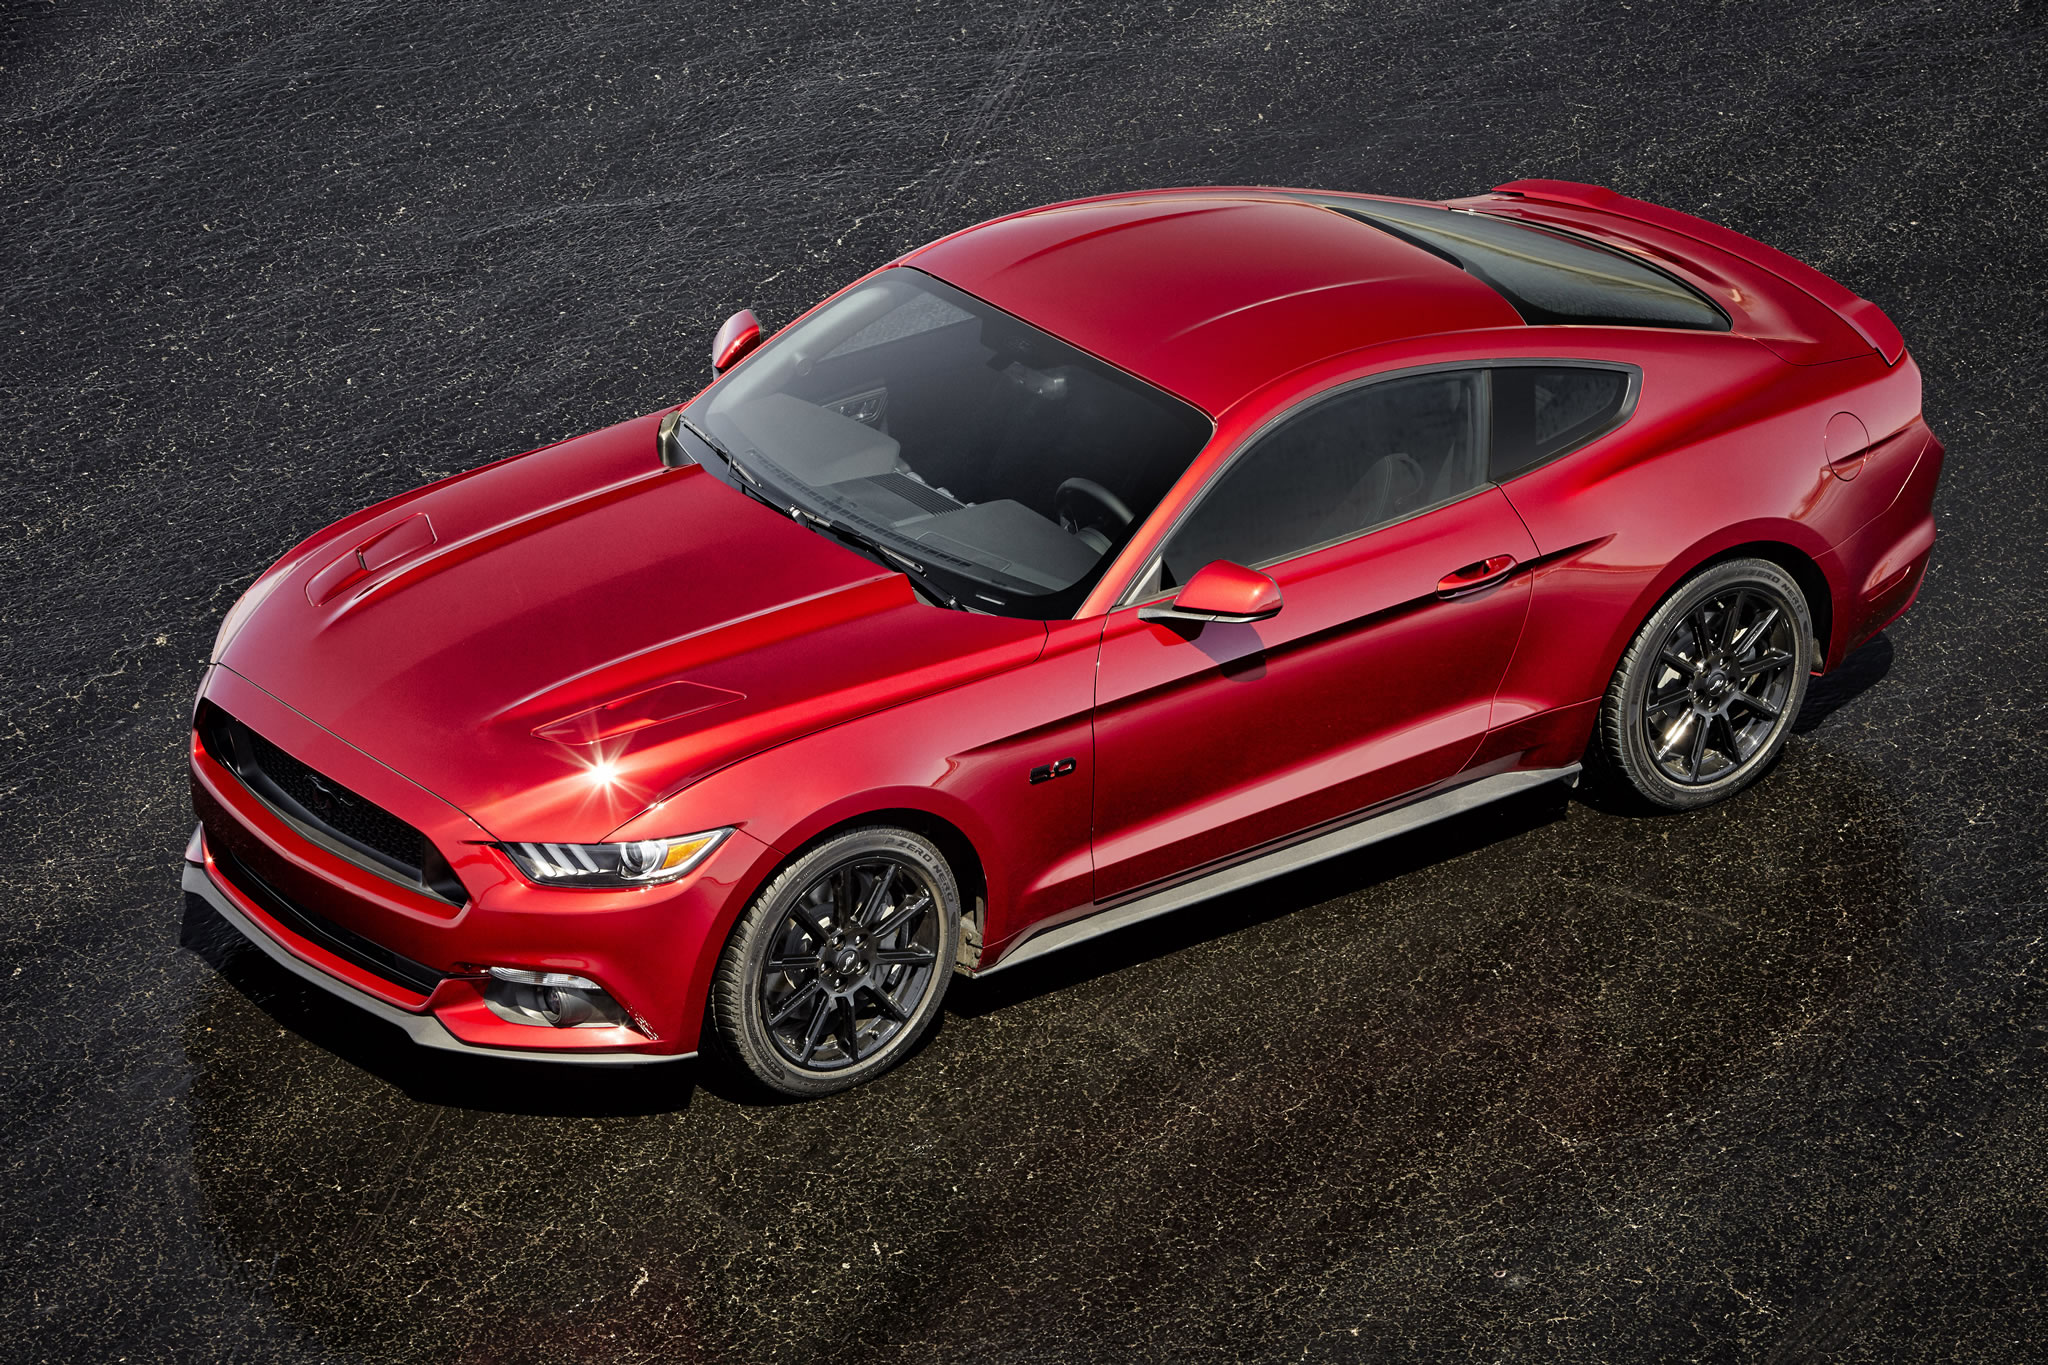 2016 Ford Mustang Gt Front Photo Ruby Red Paint Black